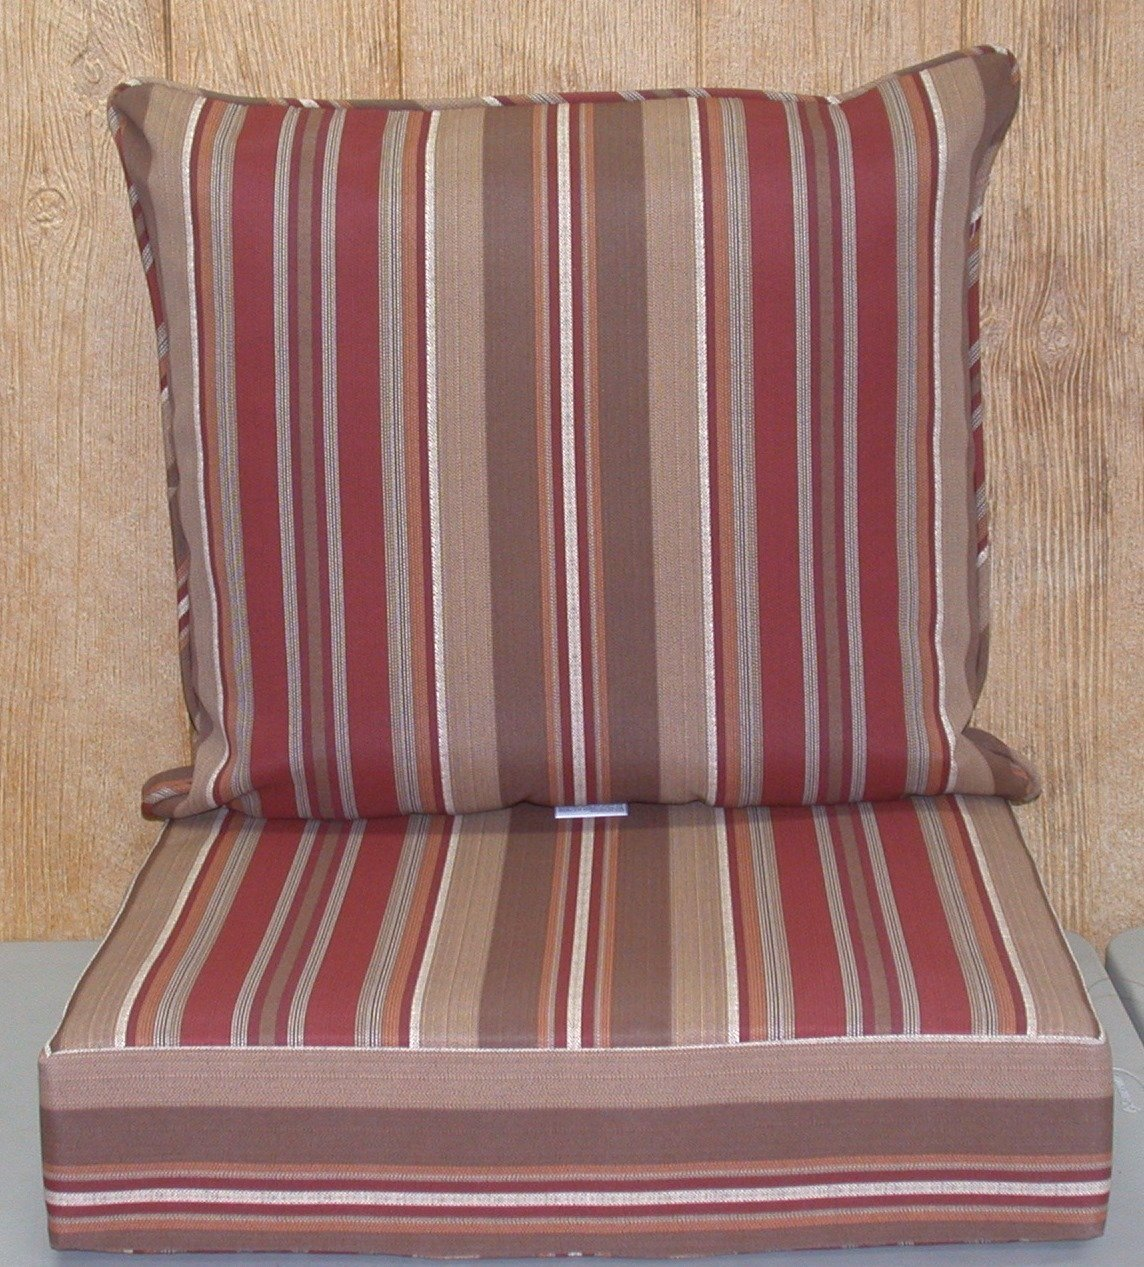 2 Pc Deep Seat Outdoor Patio Cushion Set ~ Chili Stripe ~NEW Shipping Included in Price